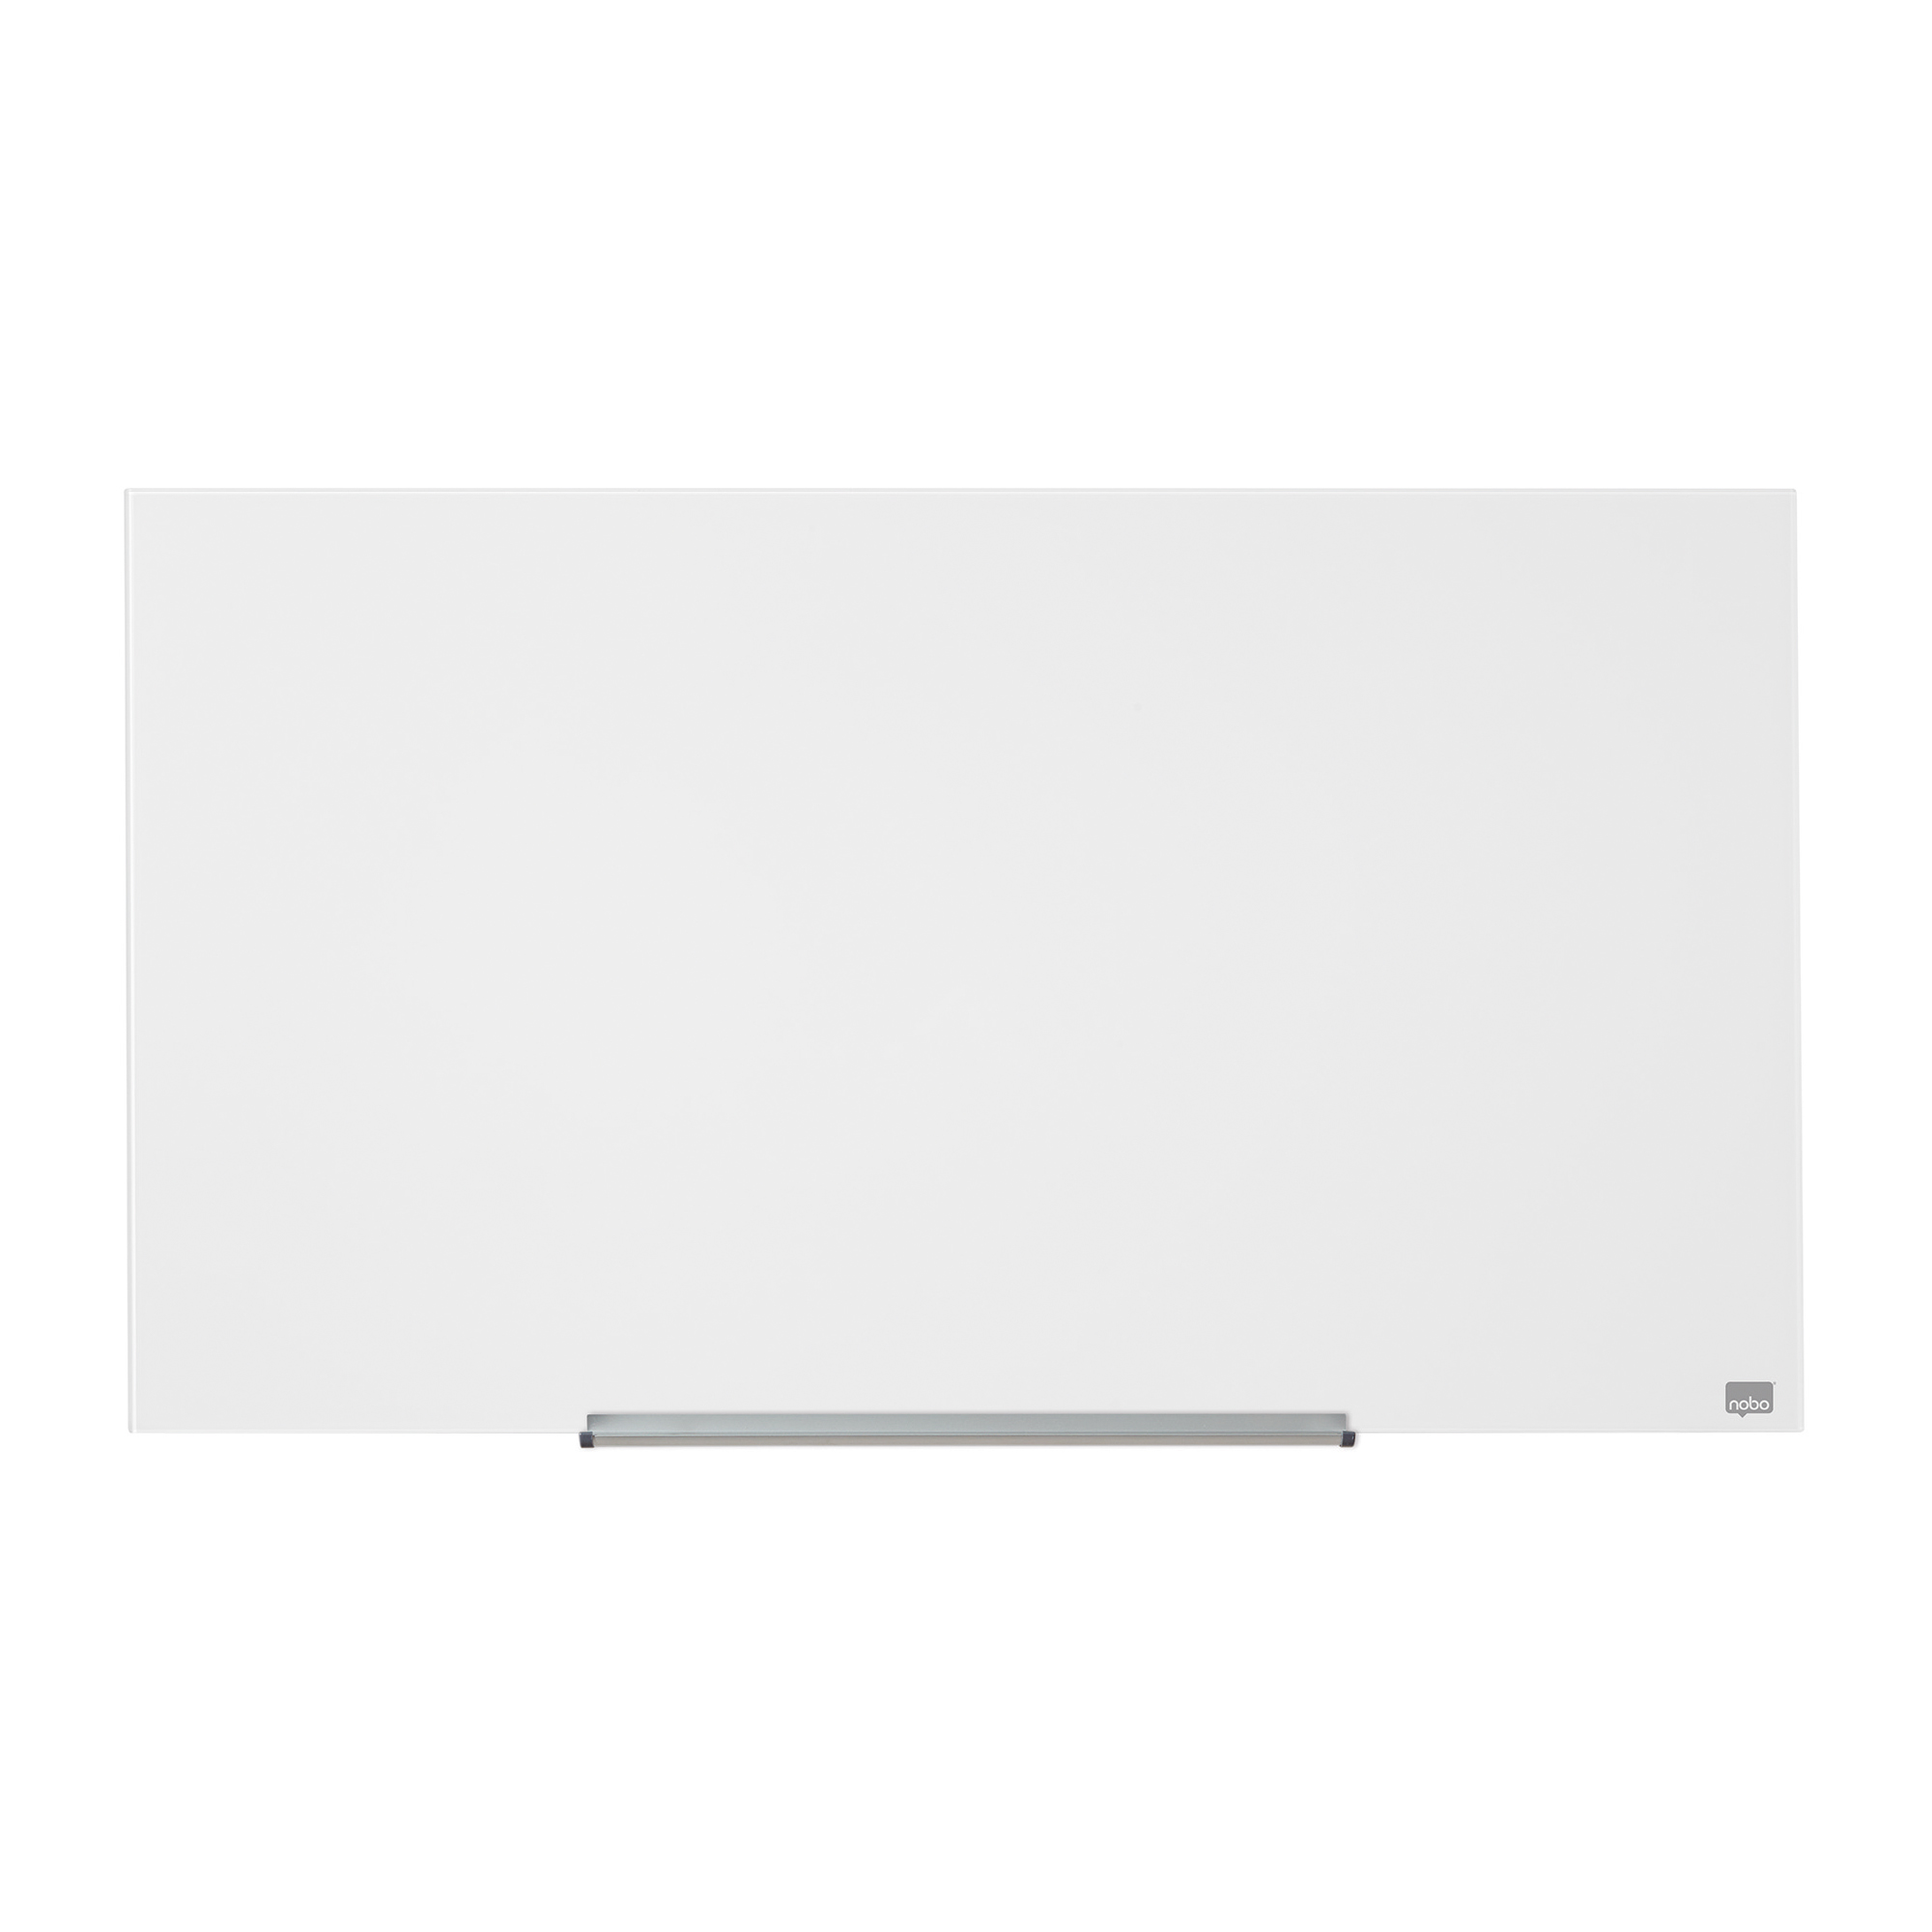 Nobo Widescreen 85 inch WBrd Glass Magnetic Scratch-Resistant Fixings Inc W1900xH1000mm Wht Ref 1905178